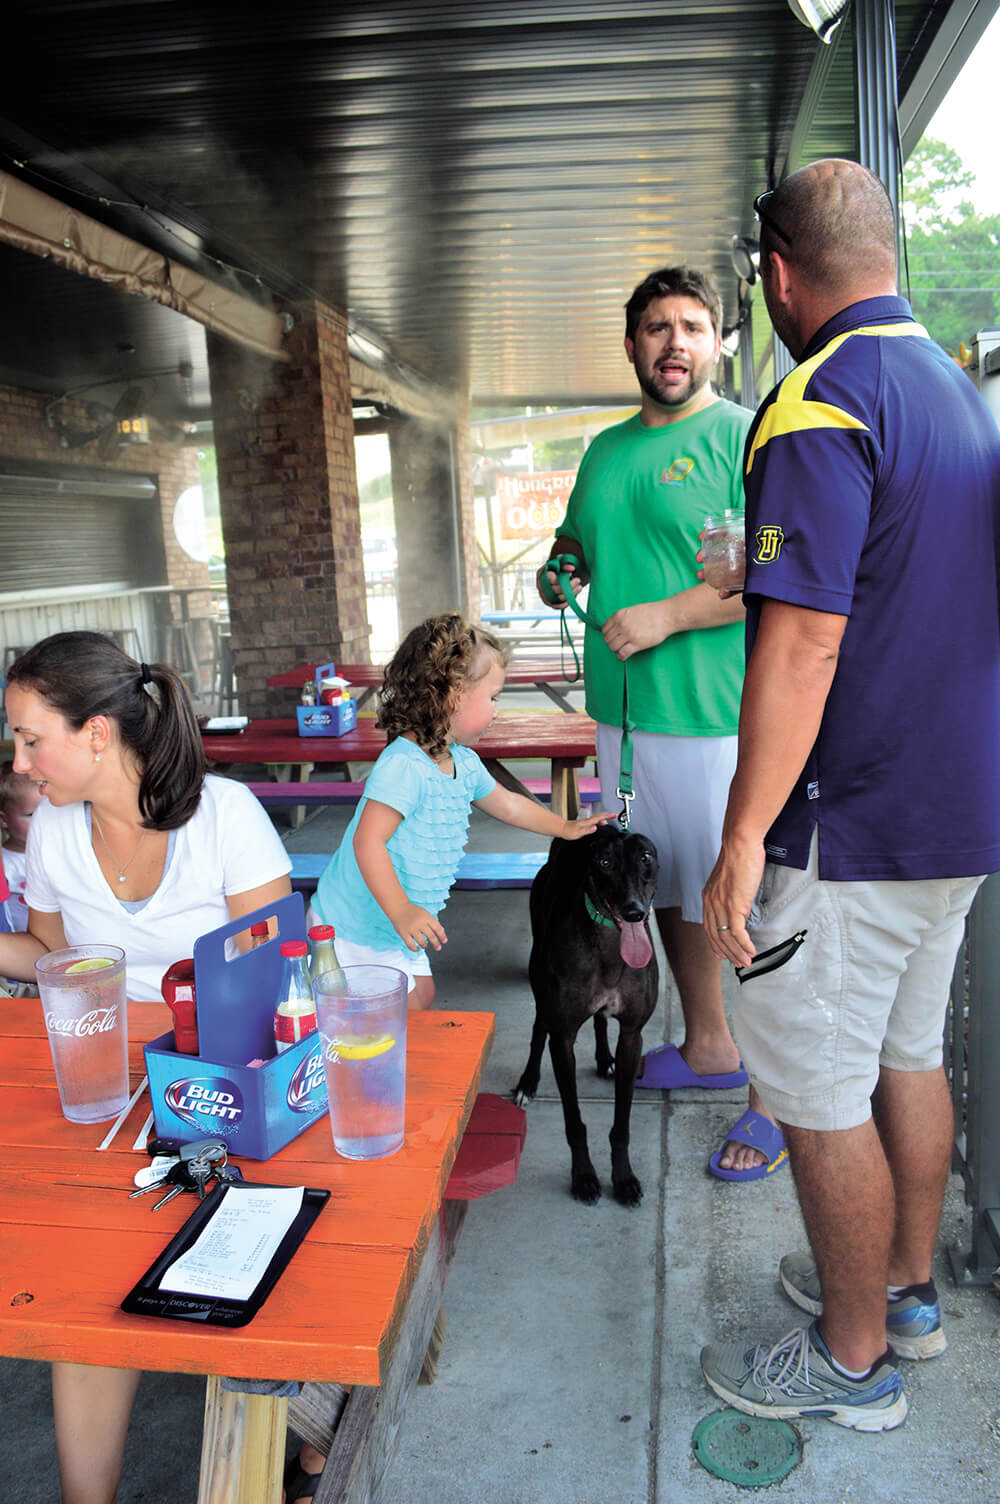 Canines may dine, a guide to Mobile's dog-friendly restaurants